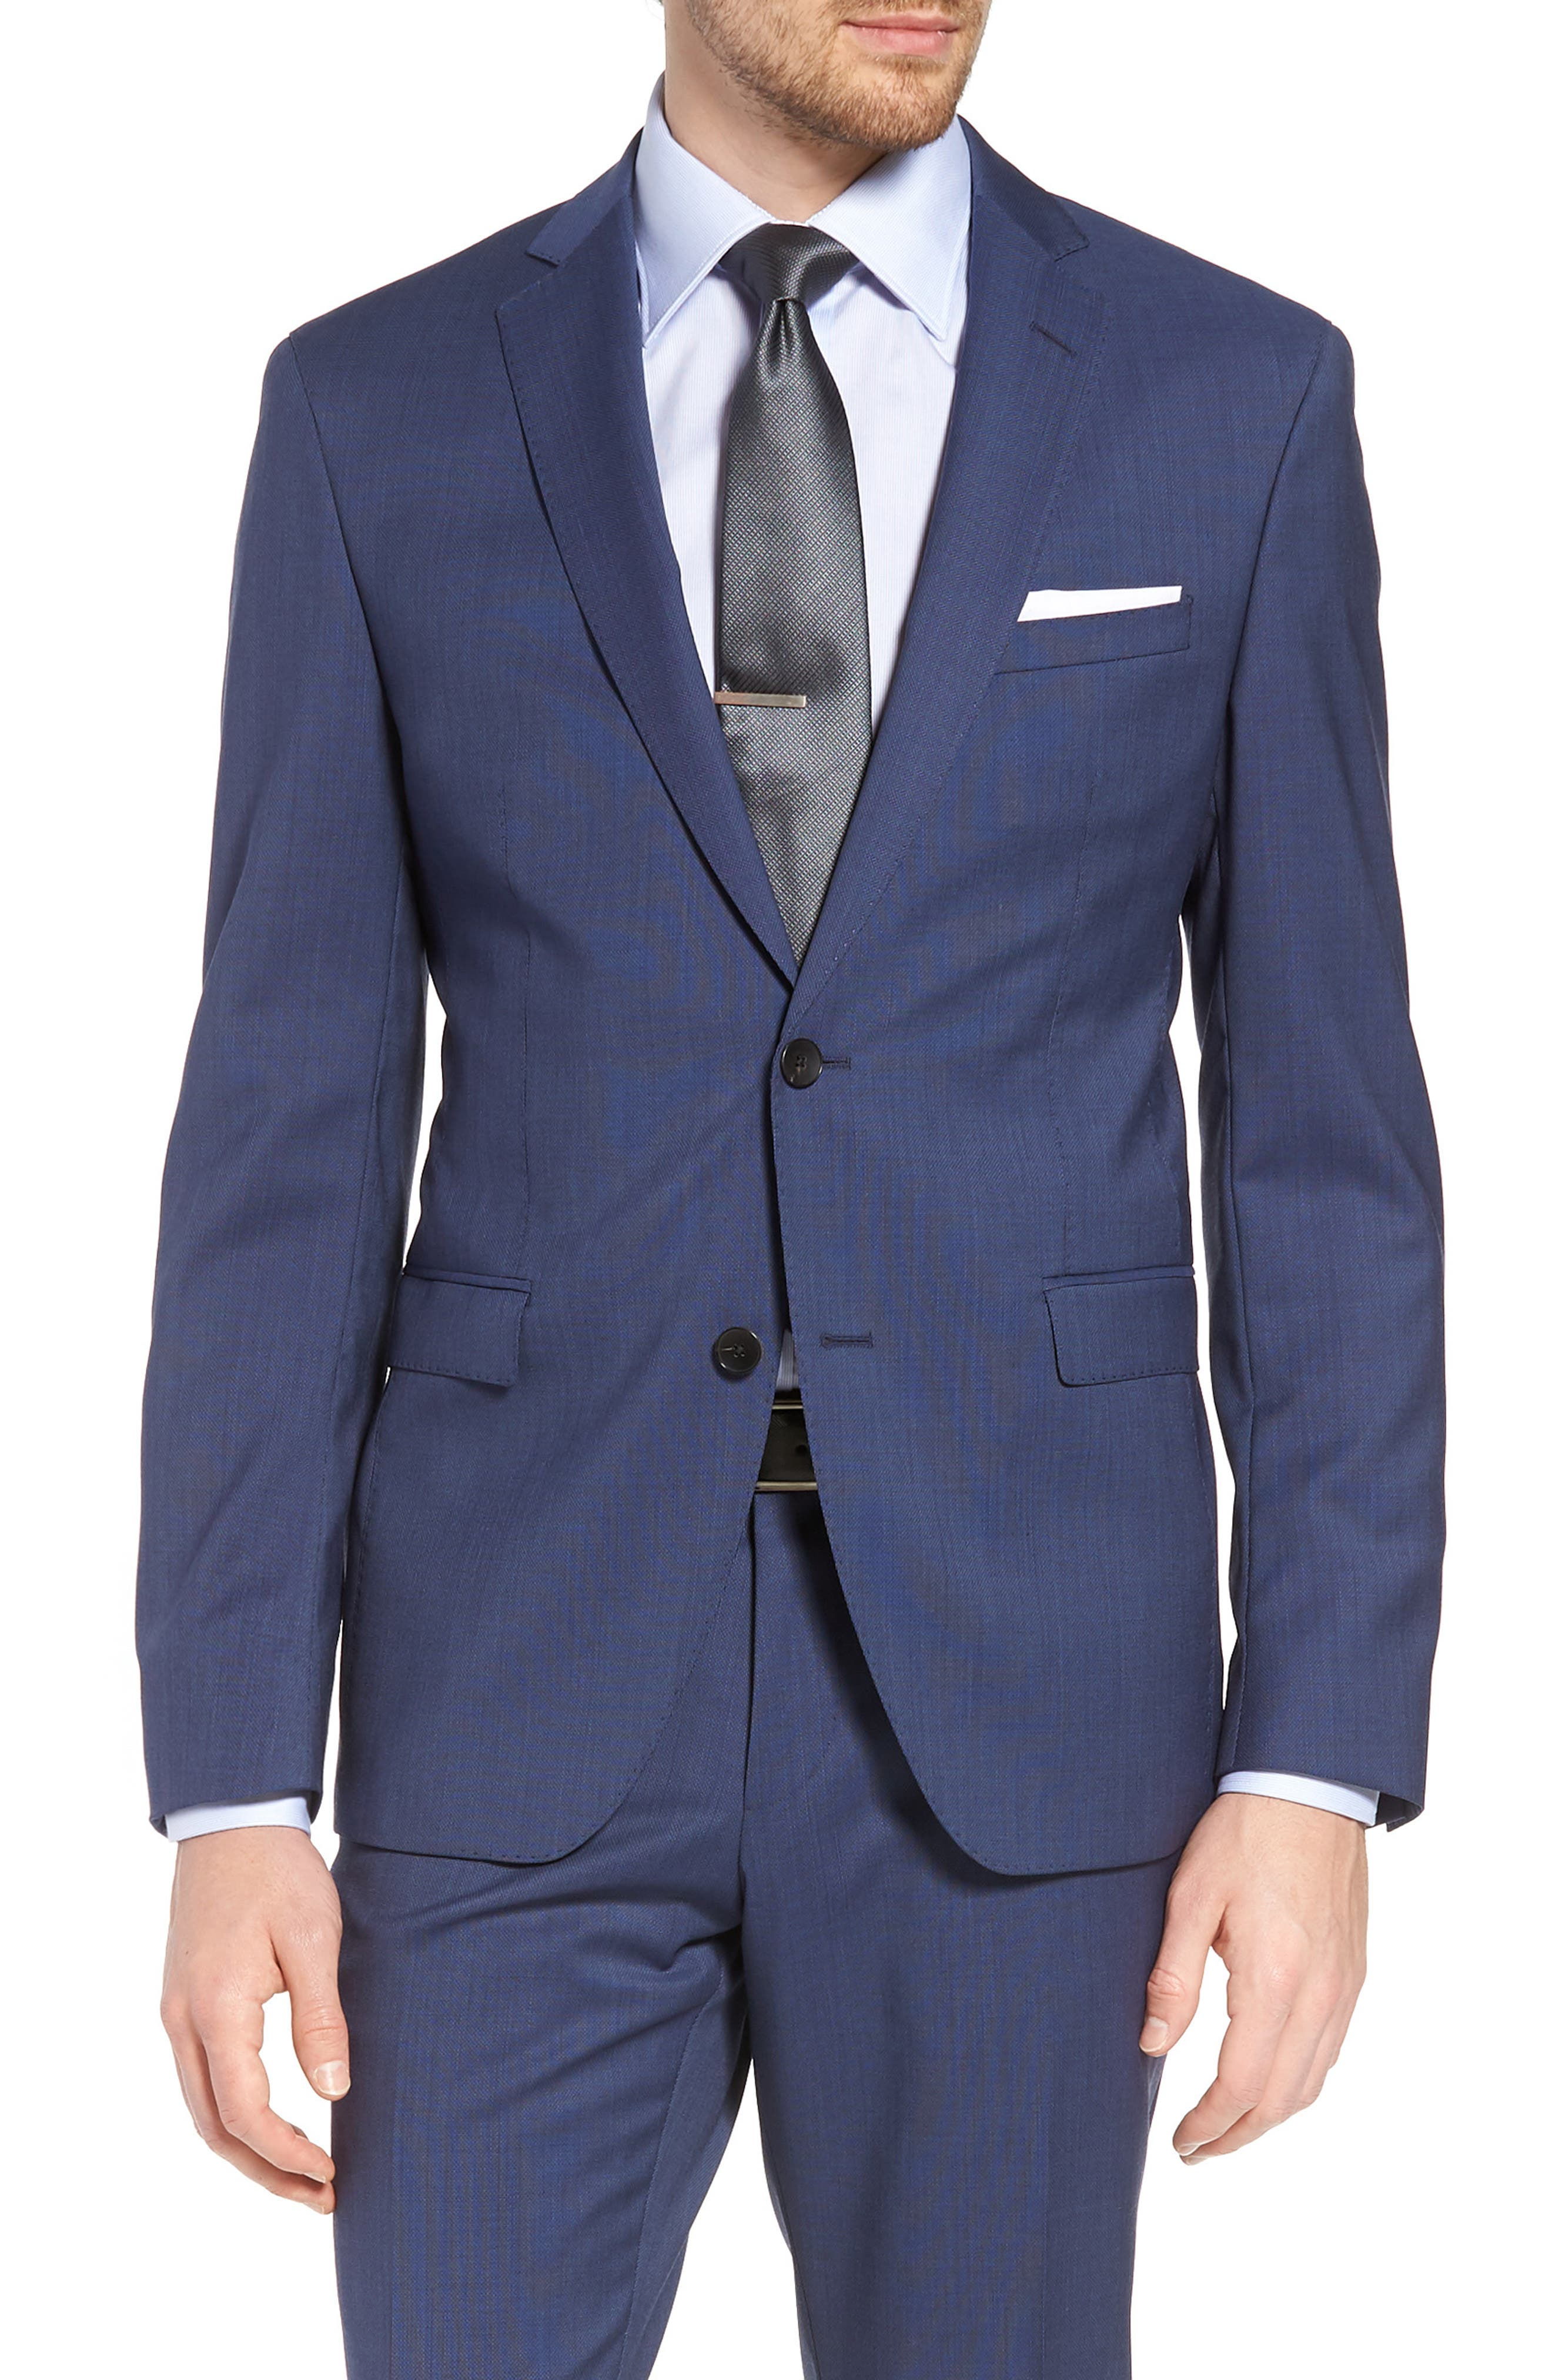 Reyno/Wave Extra Trim Fit Solid Wool Suit,                             Alternate thumbnail 5, color,                             Medium Blue